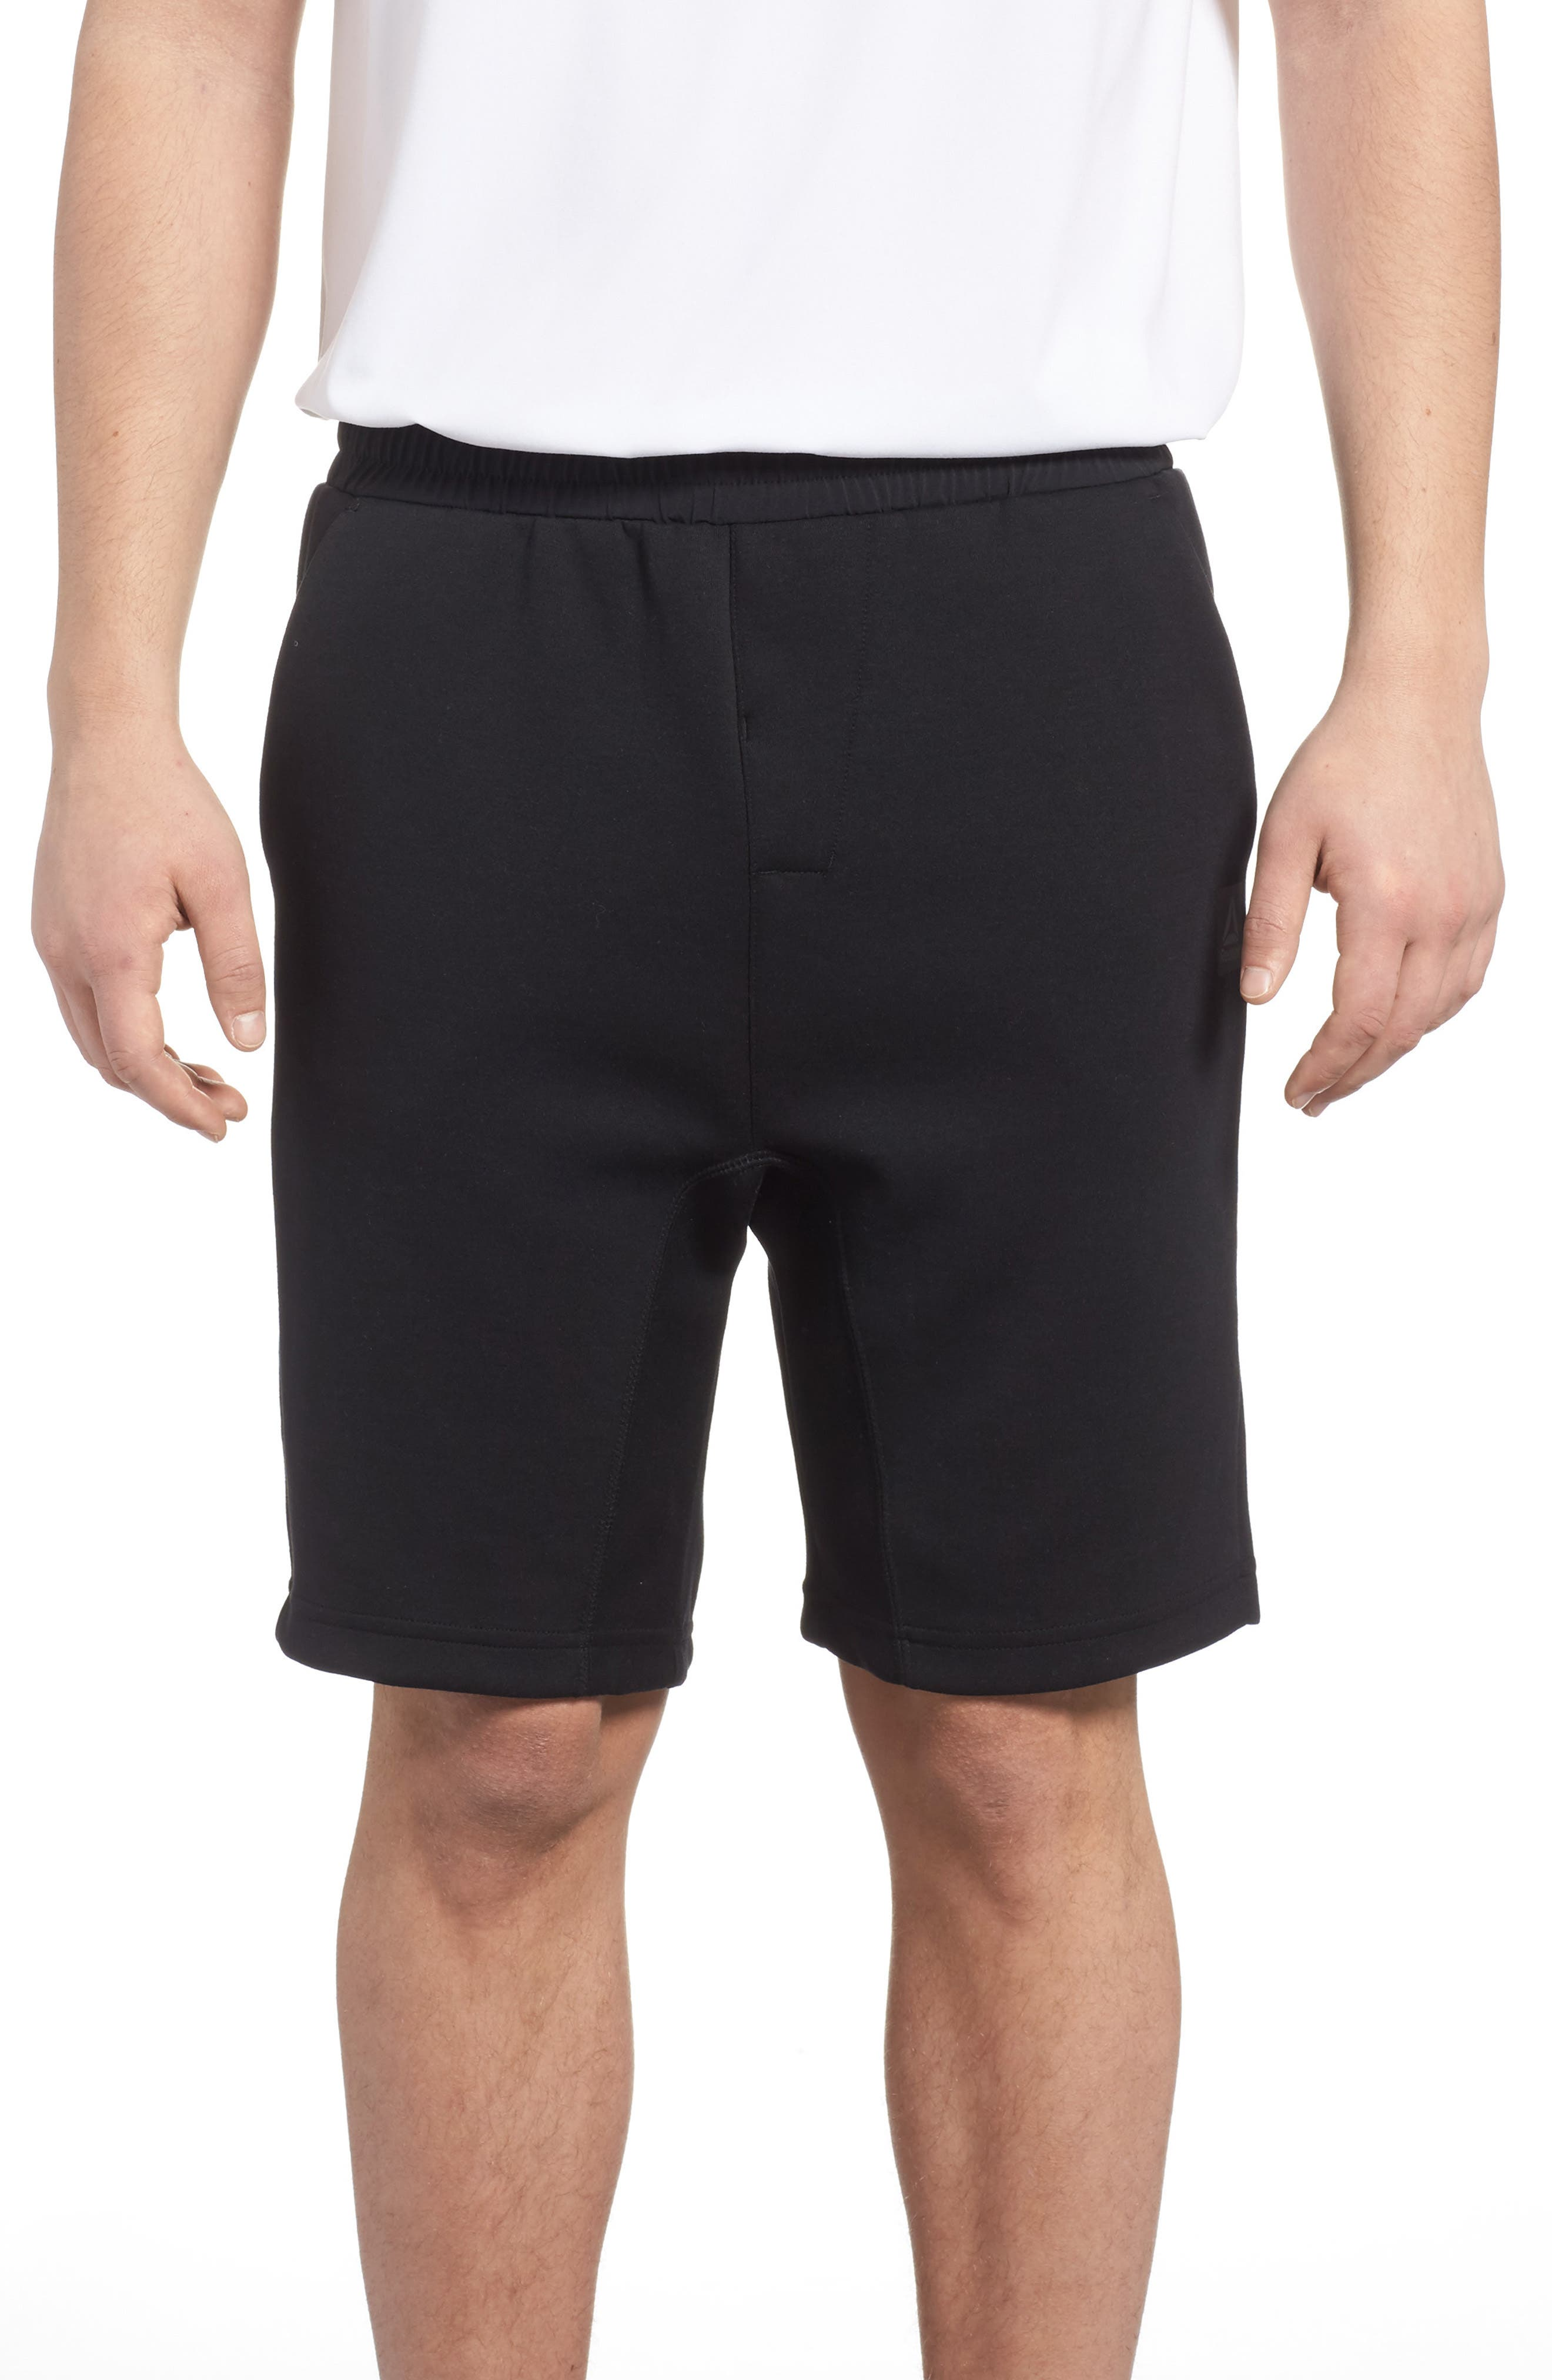 TS Knit Shorts,                             Main thumbnail 1, color,                             Black